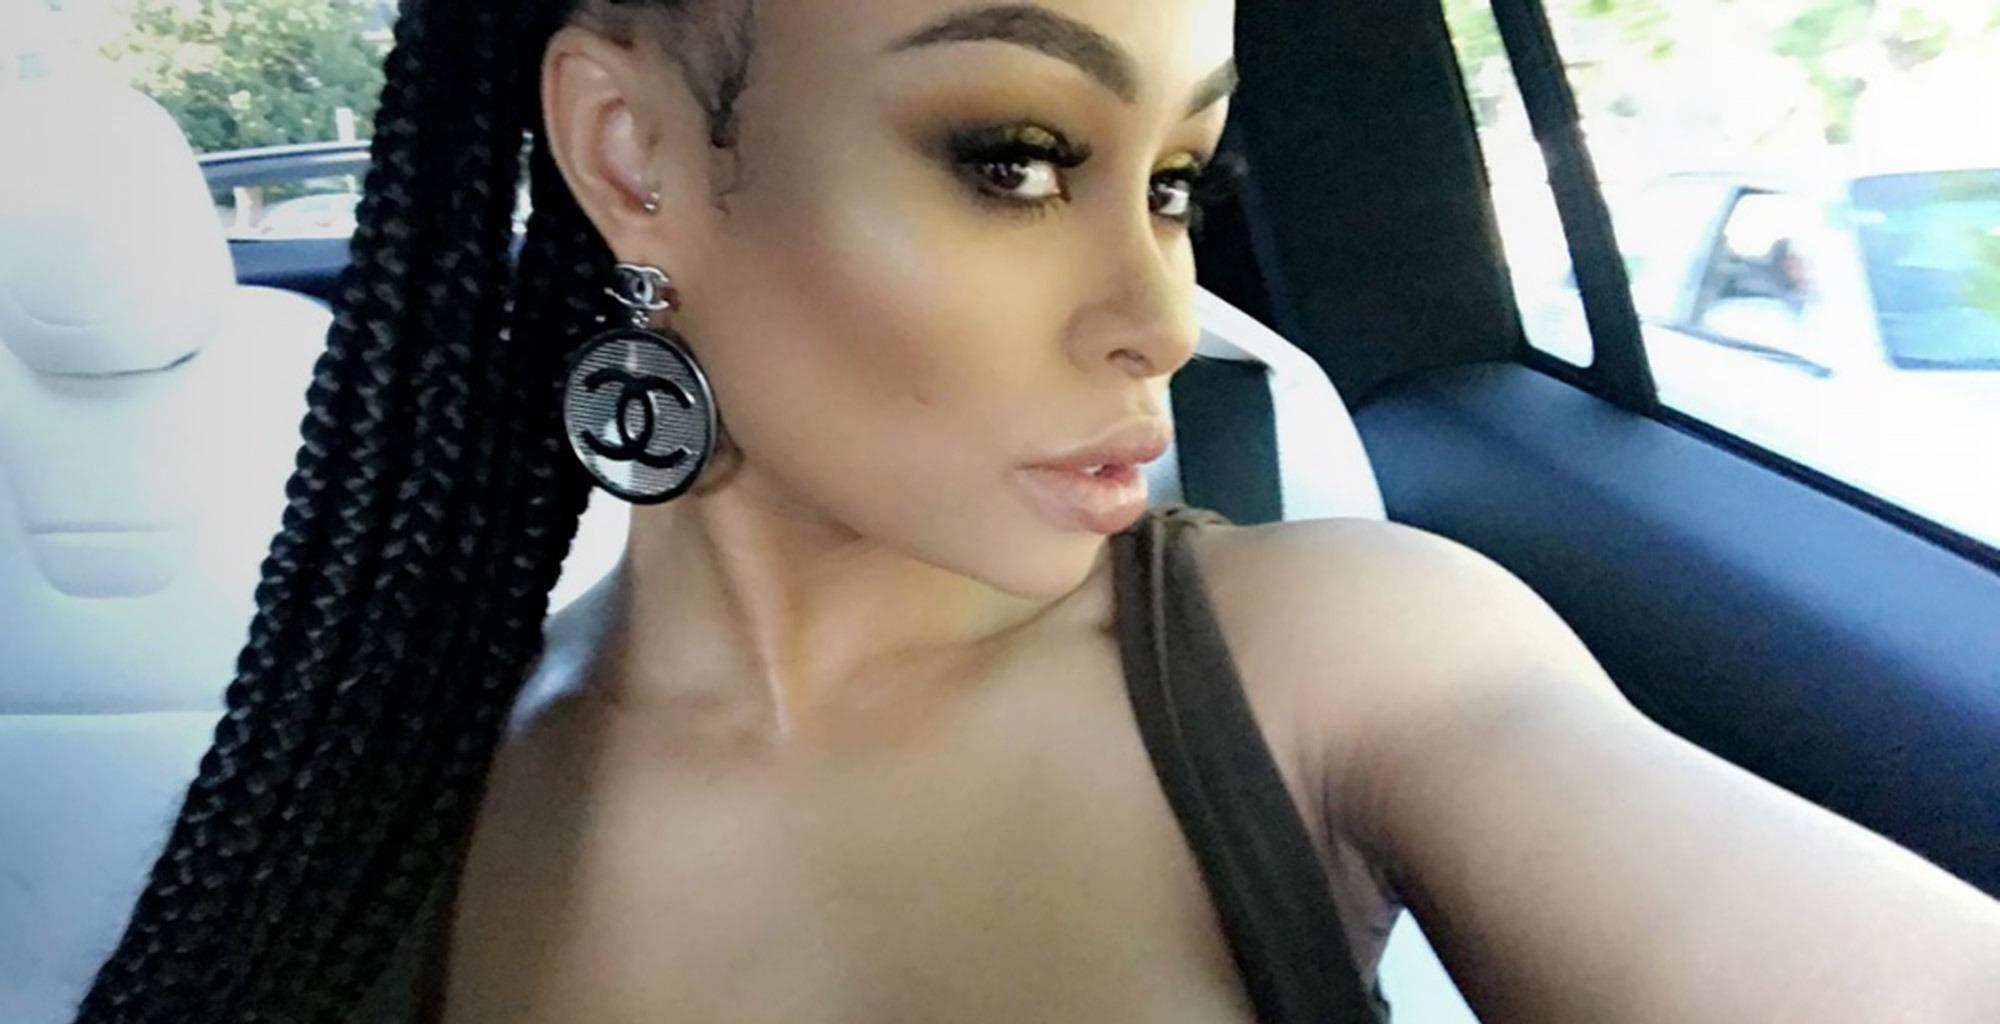 Blac Chyna Is Still Working On Her Relationship With Tokyo Toni Despite The Nasty Social Media Posts